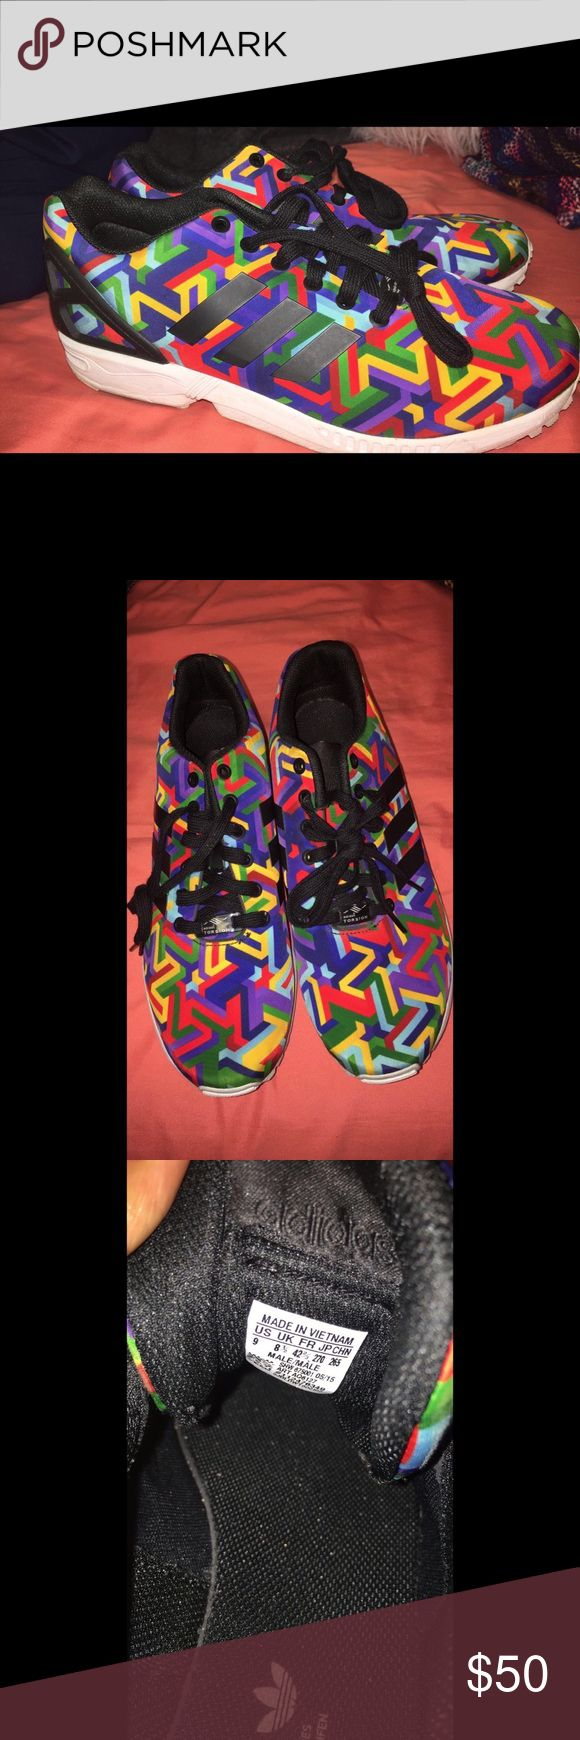 Men's Adidas ZX Flux Multicolor Only worn once! Great condition. Will negotiate. adidas Shoes Sneakers